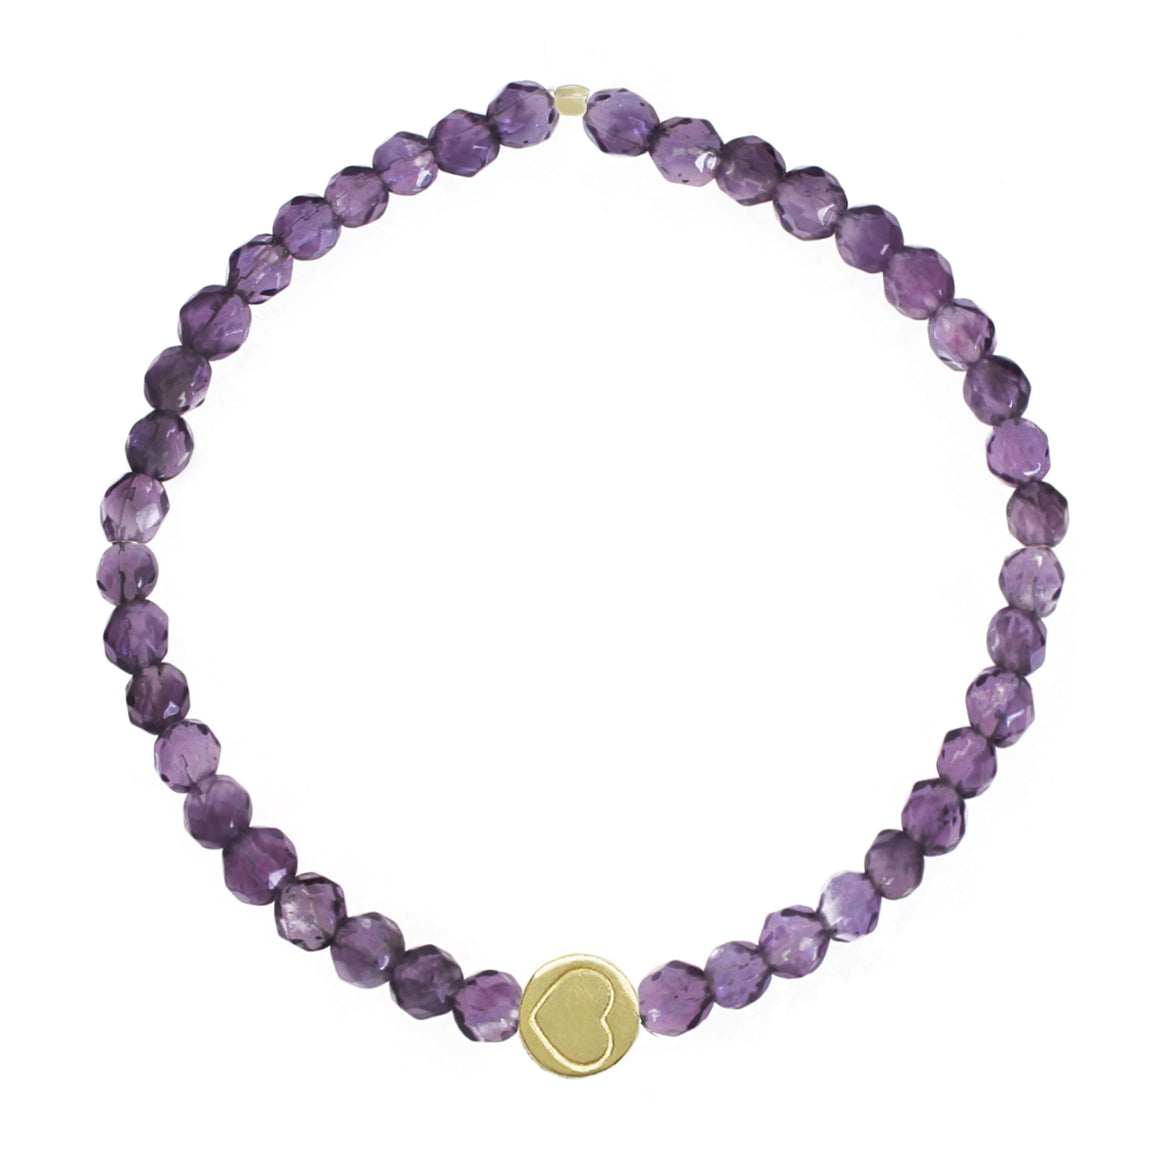 Amethyst & Gold Vermeil Friendship Heart Bracelet